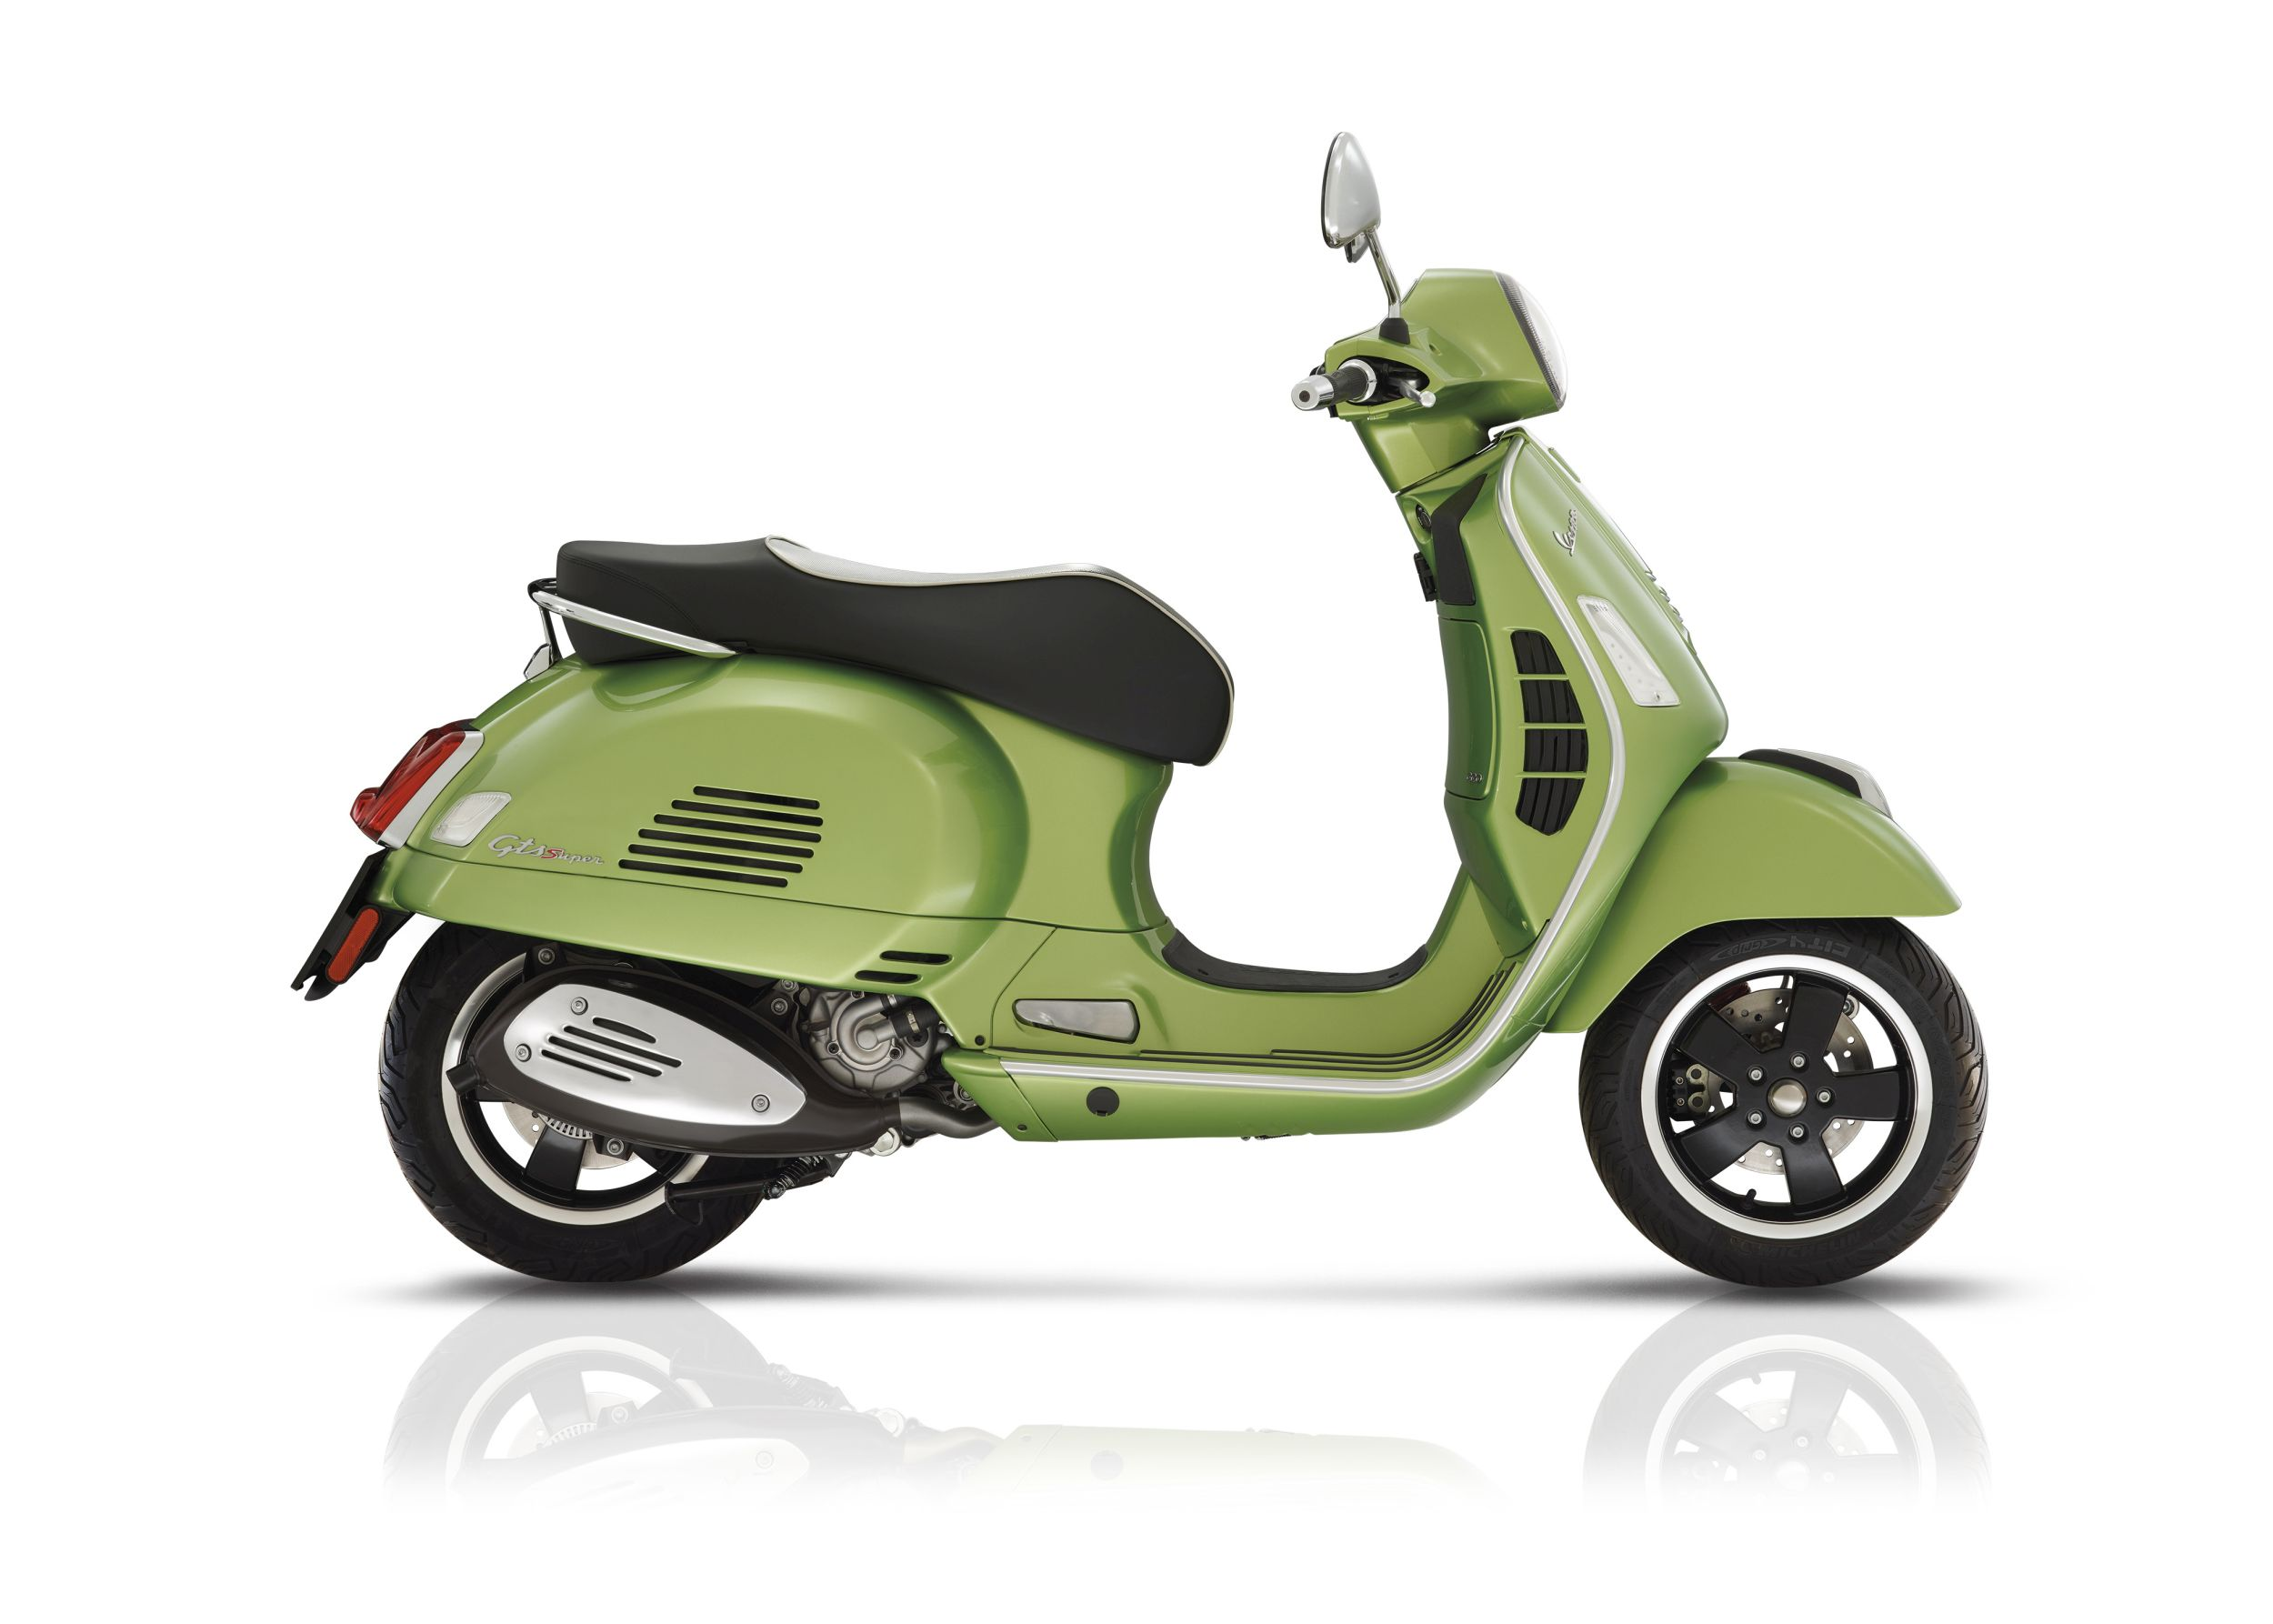 vespa gts 300 i e super all technical data of the model. Black Bedroom Furniture Sets. Home Design Ideas